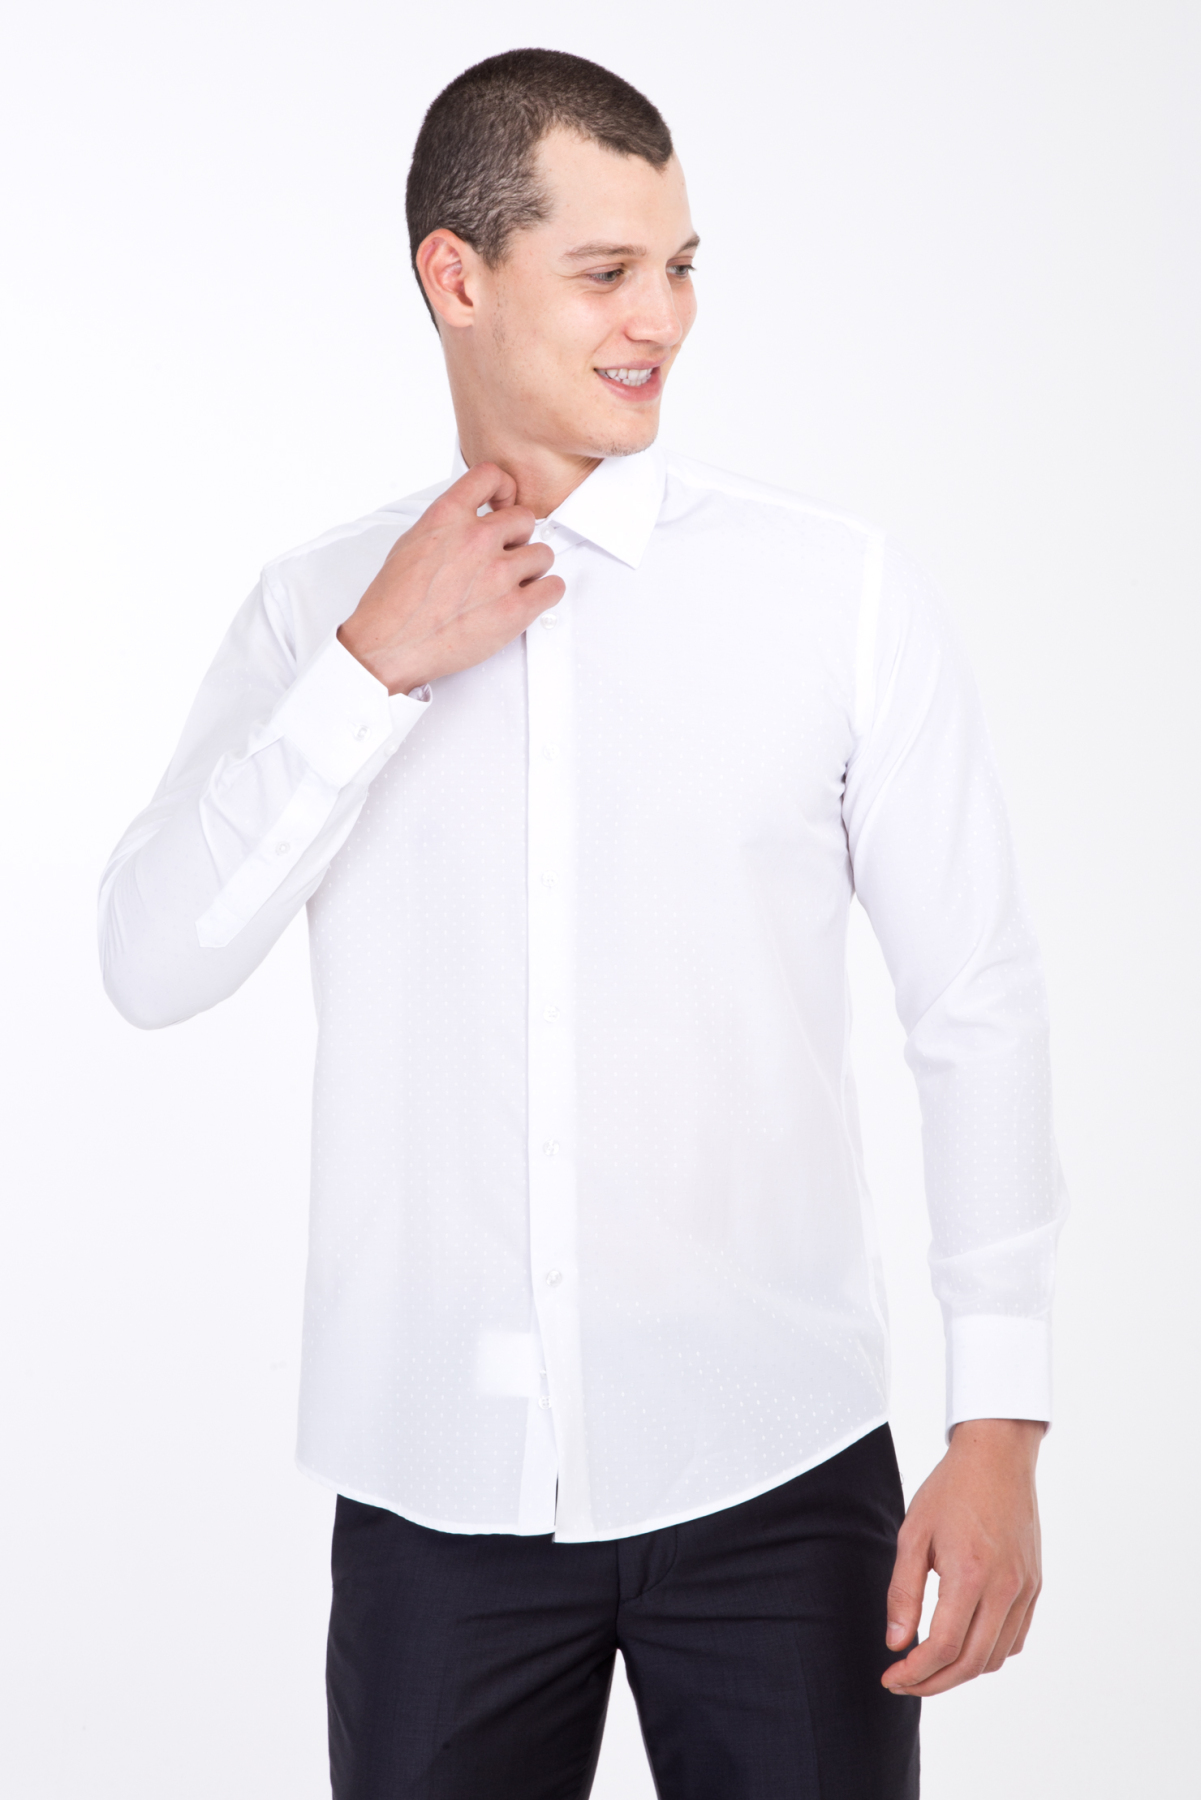 Kigili Mens Shirts Long Sleeve Solid Oxford Dress Shirt Skin-Frinedly High Quality Male 'S Casual Regular Slim Fit Tops Button Down Shirts